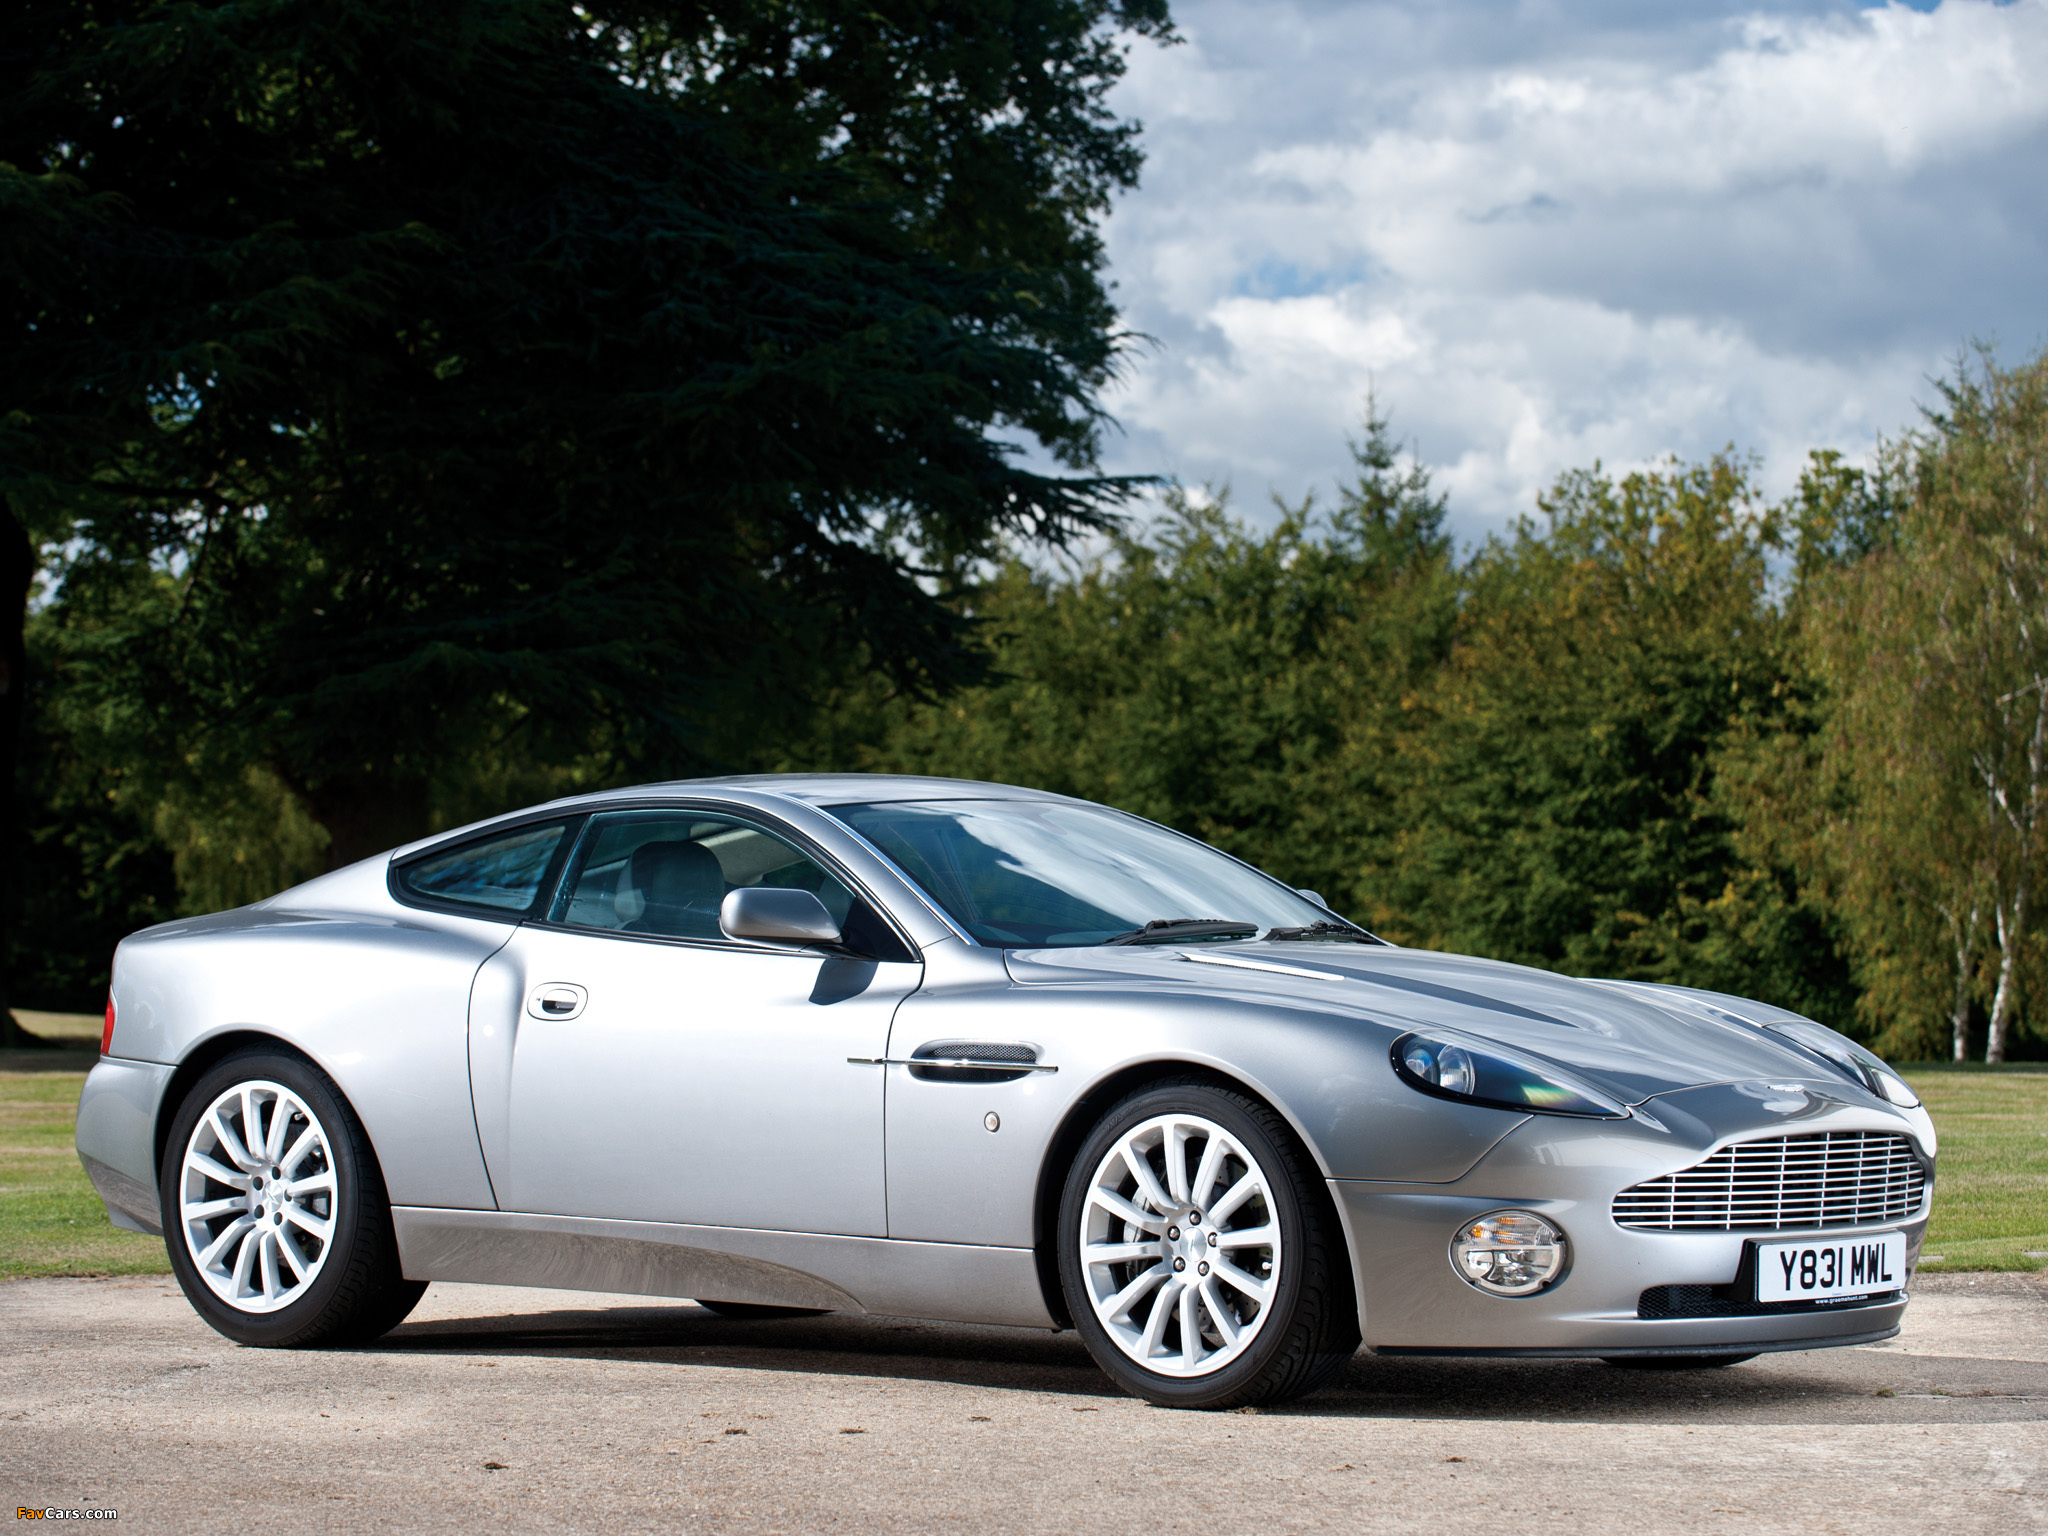 57 in addition Aston Martin Dbs furthermore Aston Martin Dbs Quantum Of Solace 1 besides Db9 likewise 1028729 the Fast And The Furious Tokyo Drift Nissan 350z Can Be Yours For 234k. on 2006 aston martin vanquish